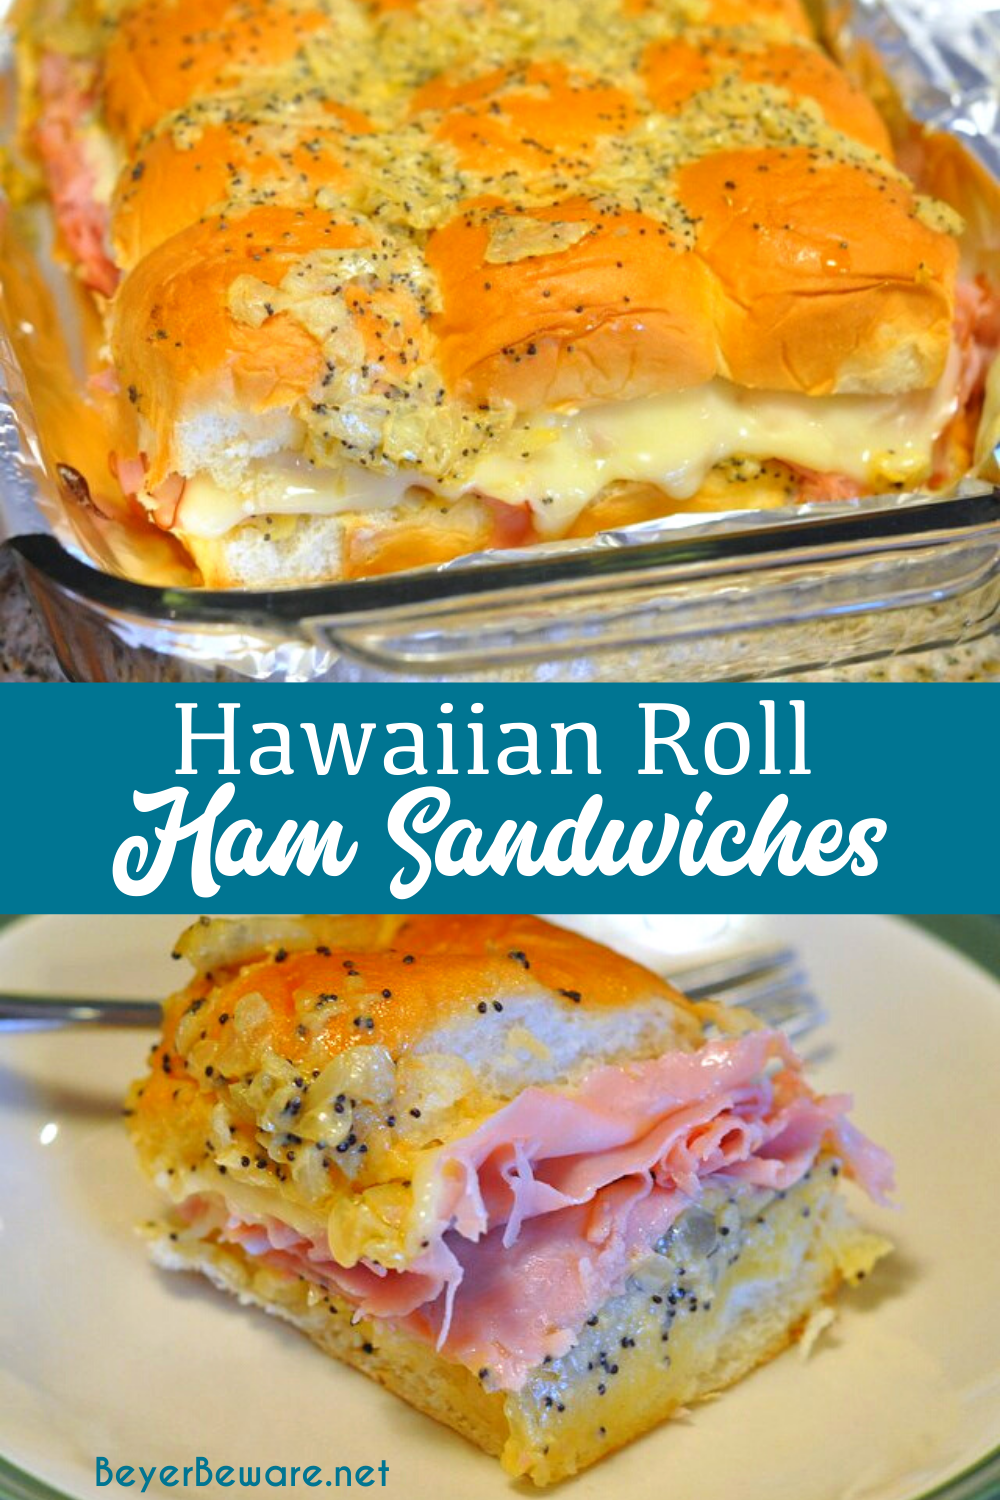 12 Hawaiian sweet rolls 1 onion minced or grated with food chopper 1 stick butter 3 tablespoons Dijon Mustard 2 teaspoons Worcestershire sauce 3 teaspoons poppy seeds 1/2 pound deli ham 8 slices Swiss cheese